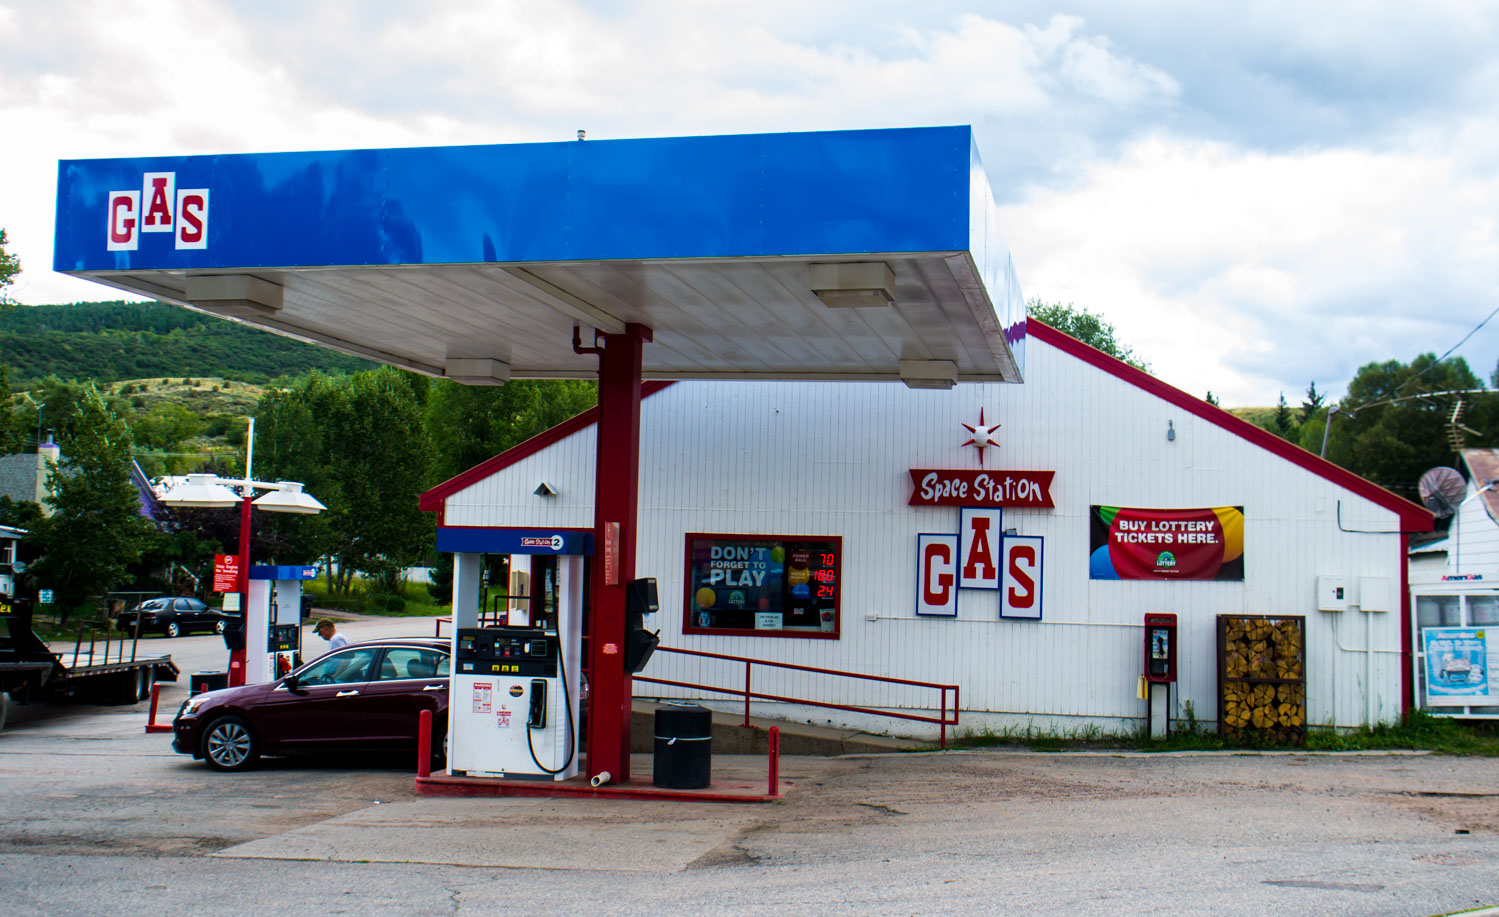 Space Station Gas Station Oak Creek Colorado